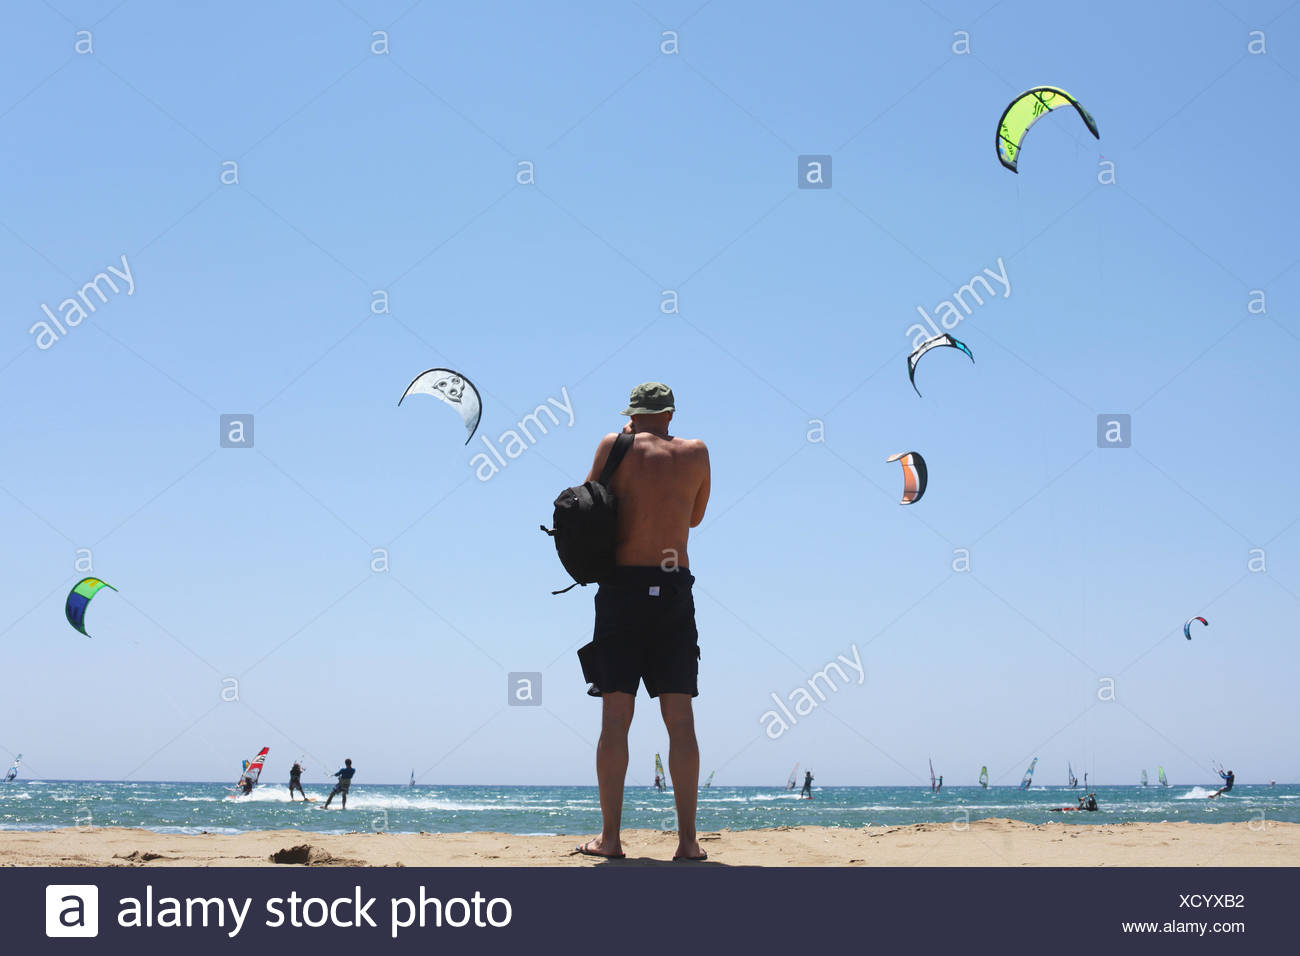 Greece, rear view of man standing on beach and looking at kites - Stock Image